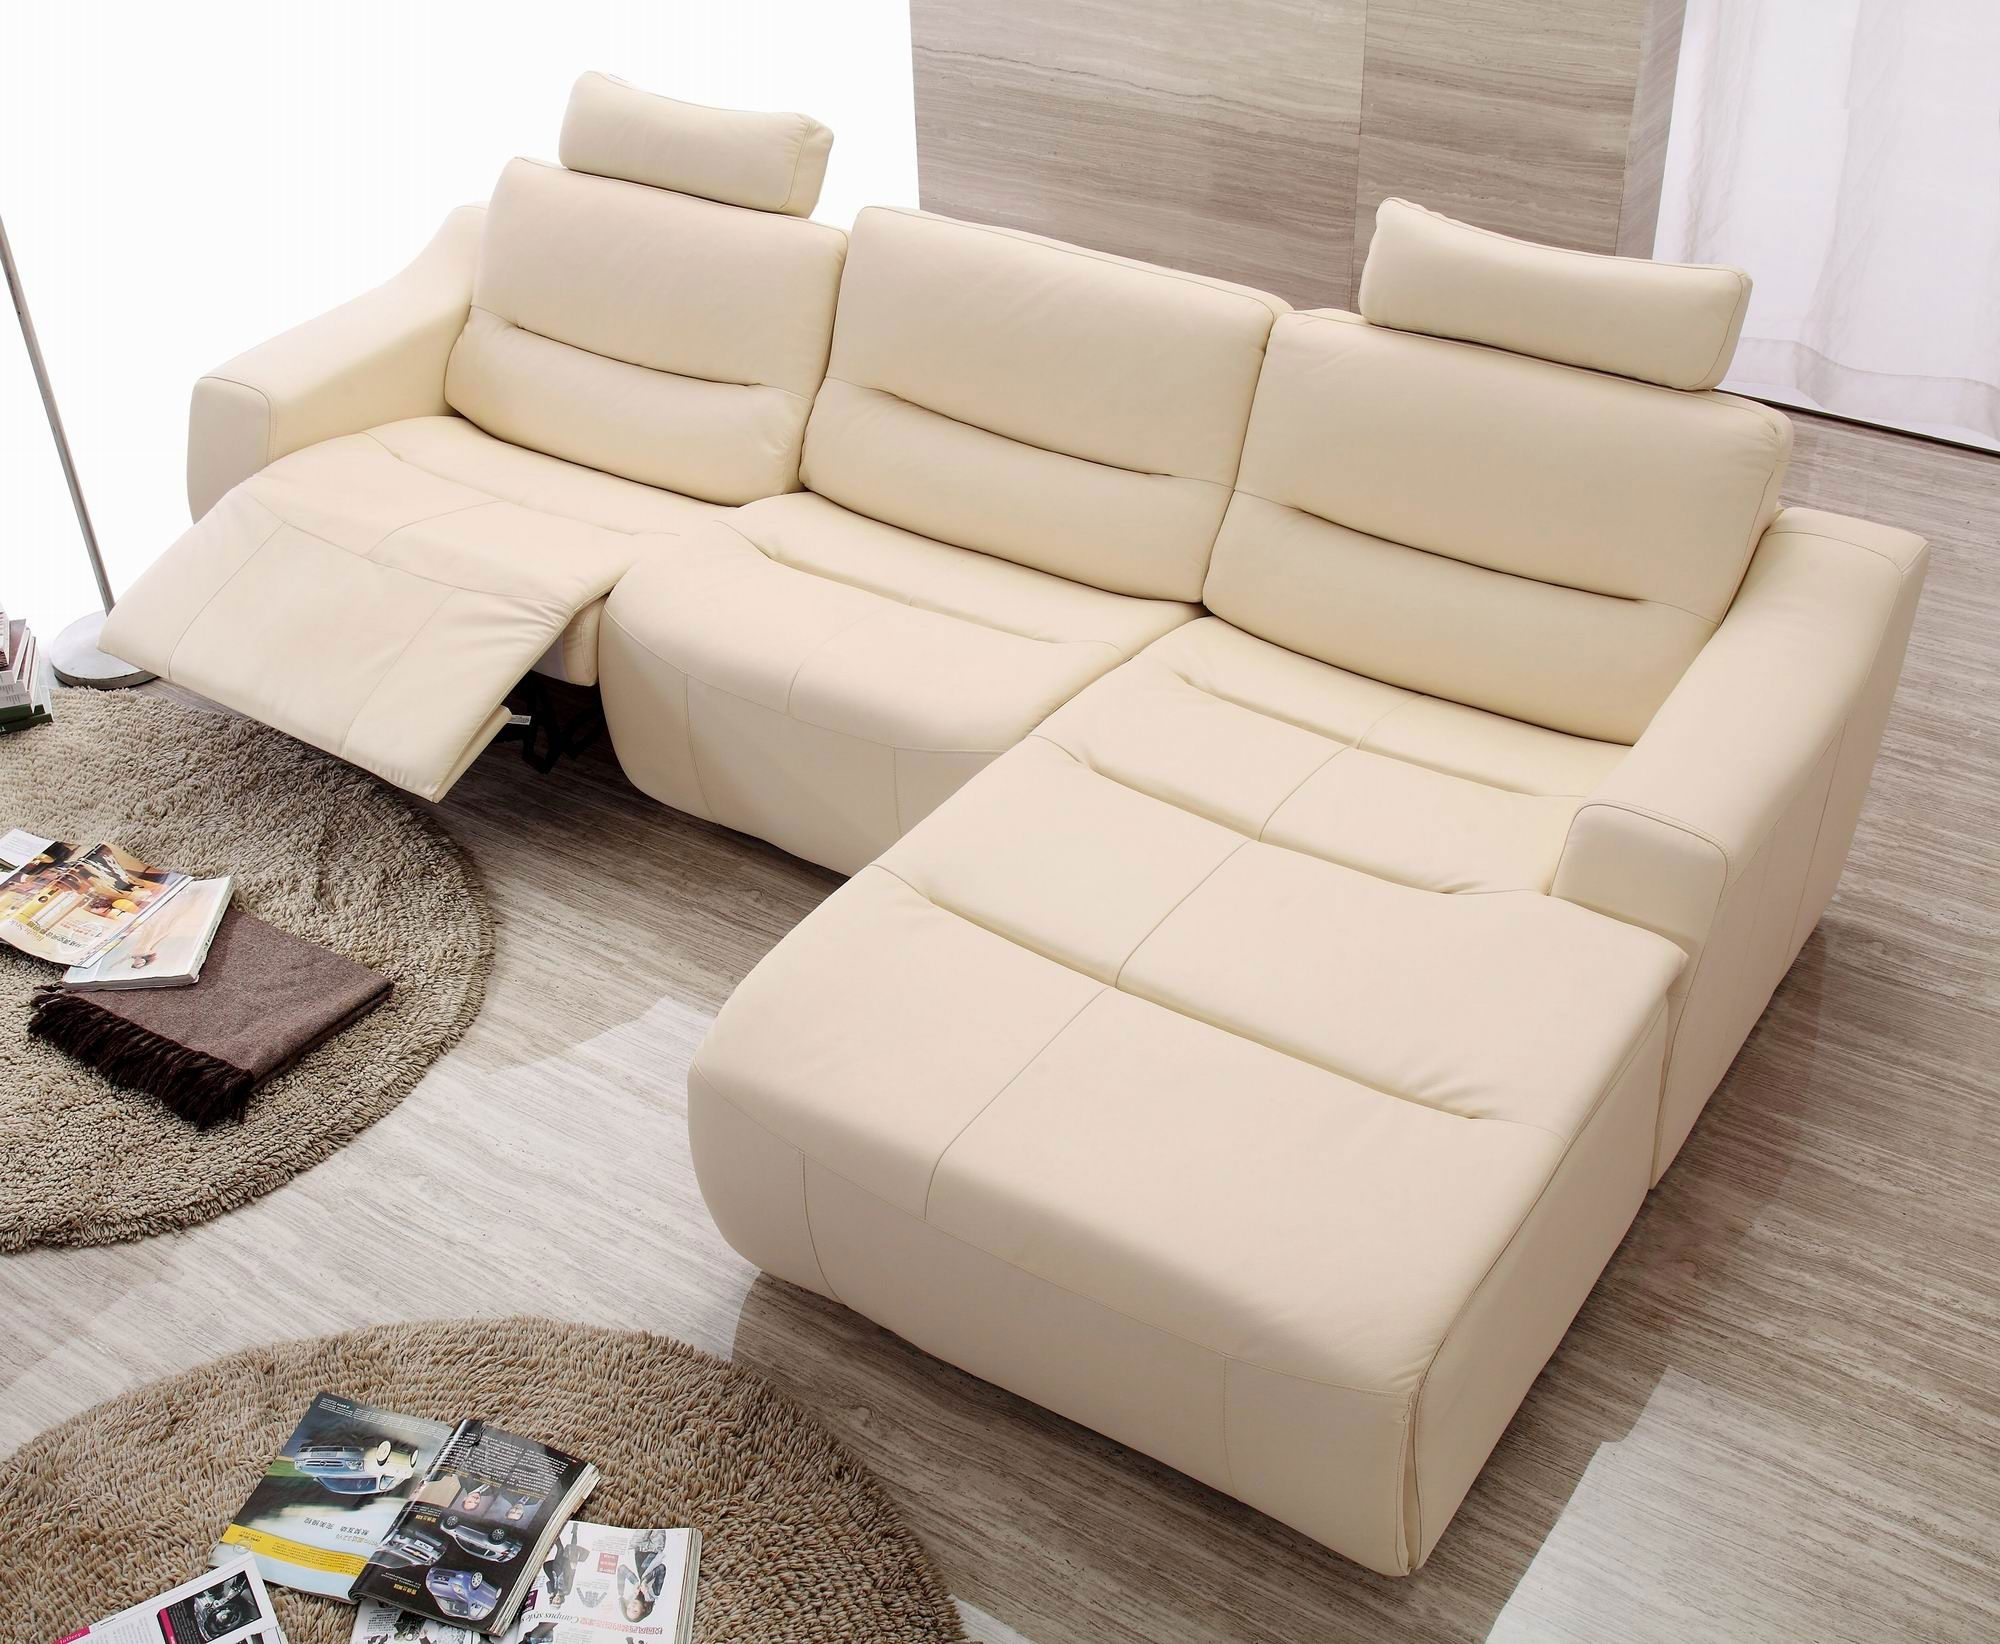 Beige Leather Reclining Sofa | Baci Living Room Throughout Clyde Saddle 3 Piece Power Reclining Sectionals With Power Headrest & Usb (Image 7 of 25)